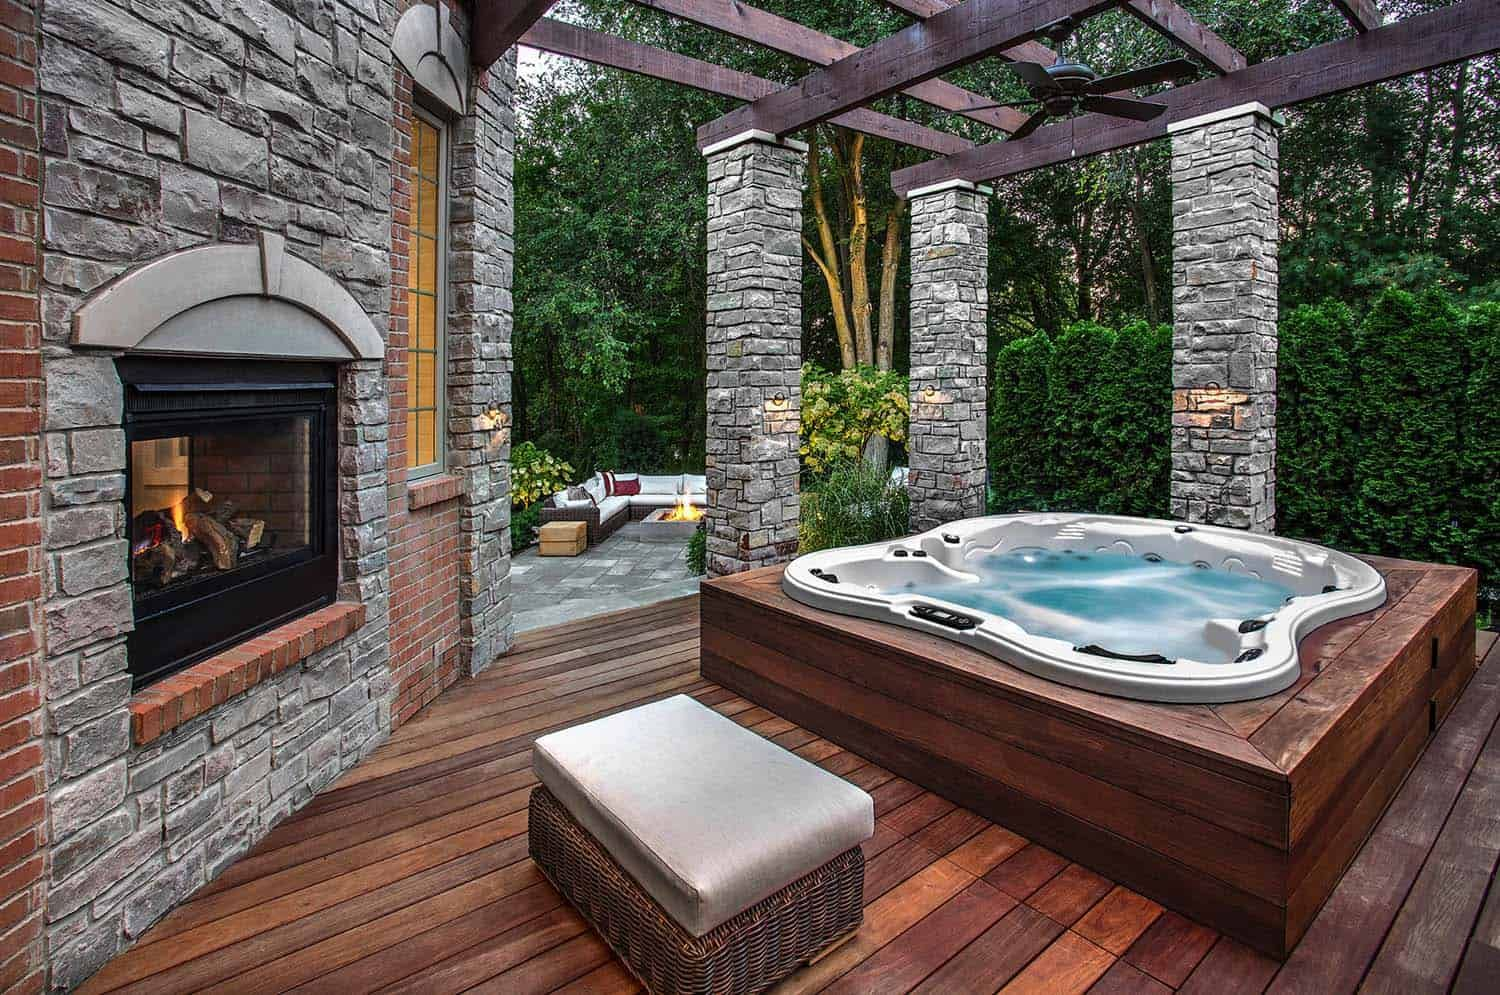 40 Outstanding Hot Tub Ideas To Create A Backyard Oasis Hot Tub Patio Hot Tub Backyard Hot Tub Garden